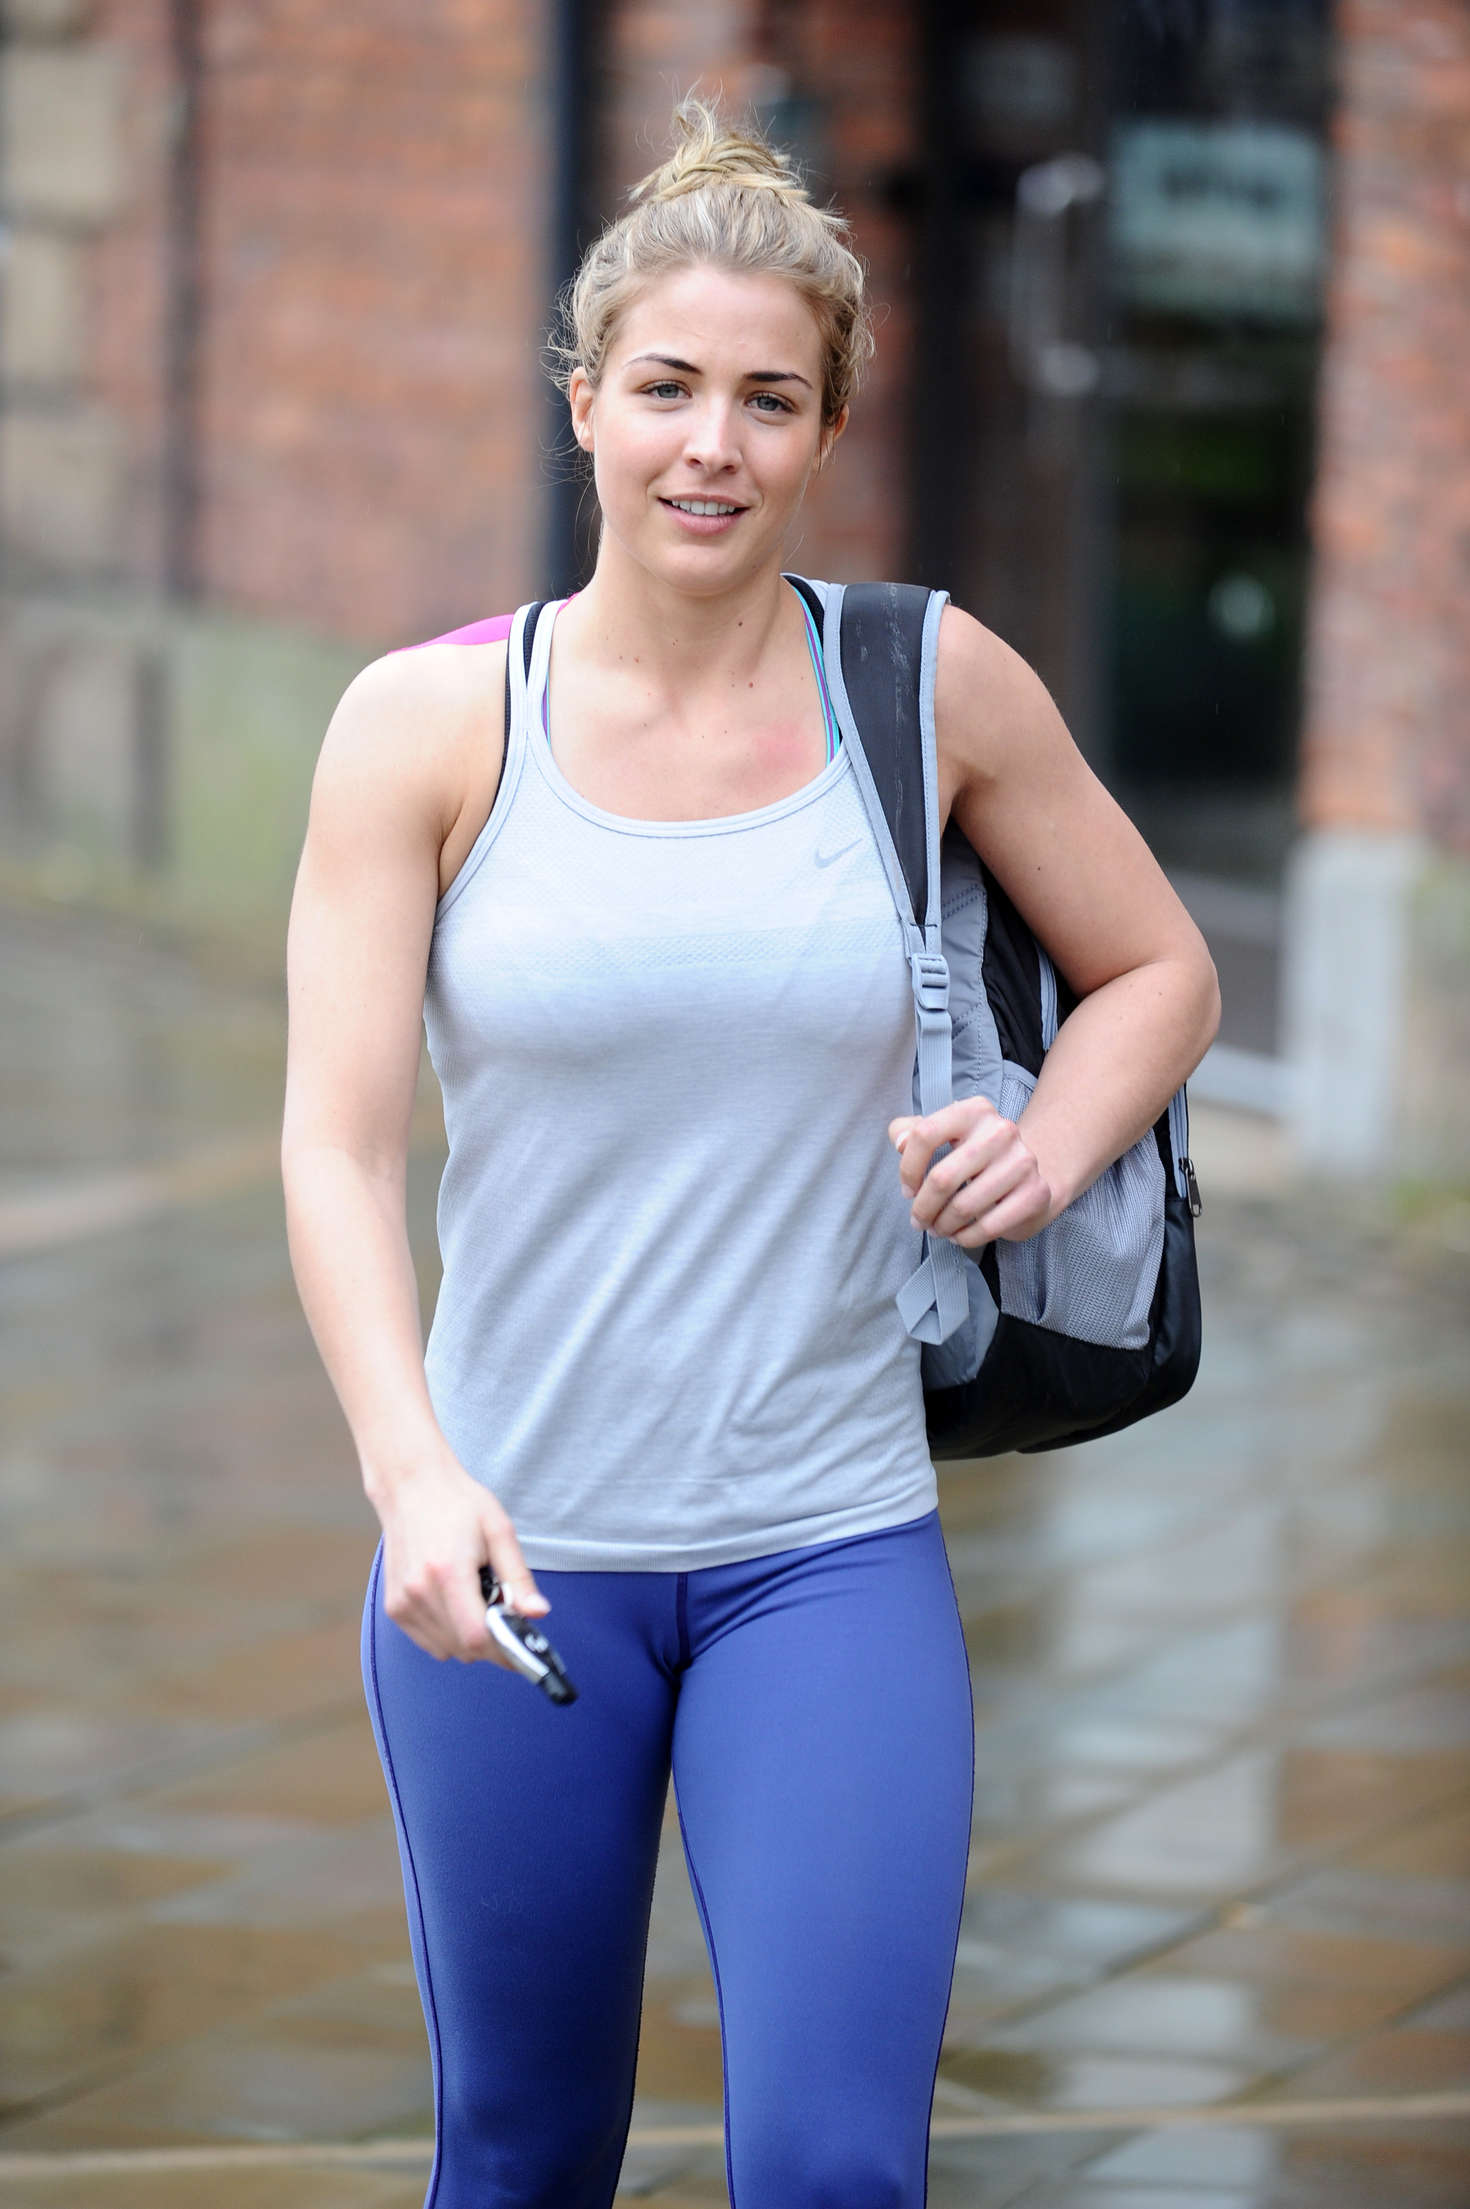 Booty Gemma Atkinson nude photos 2019